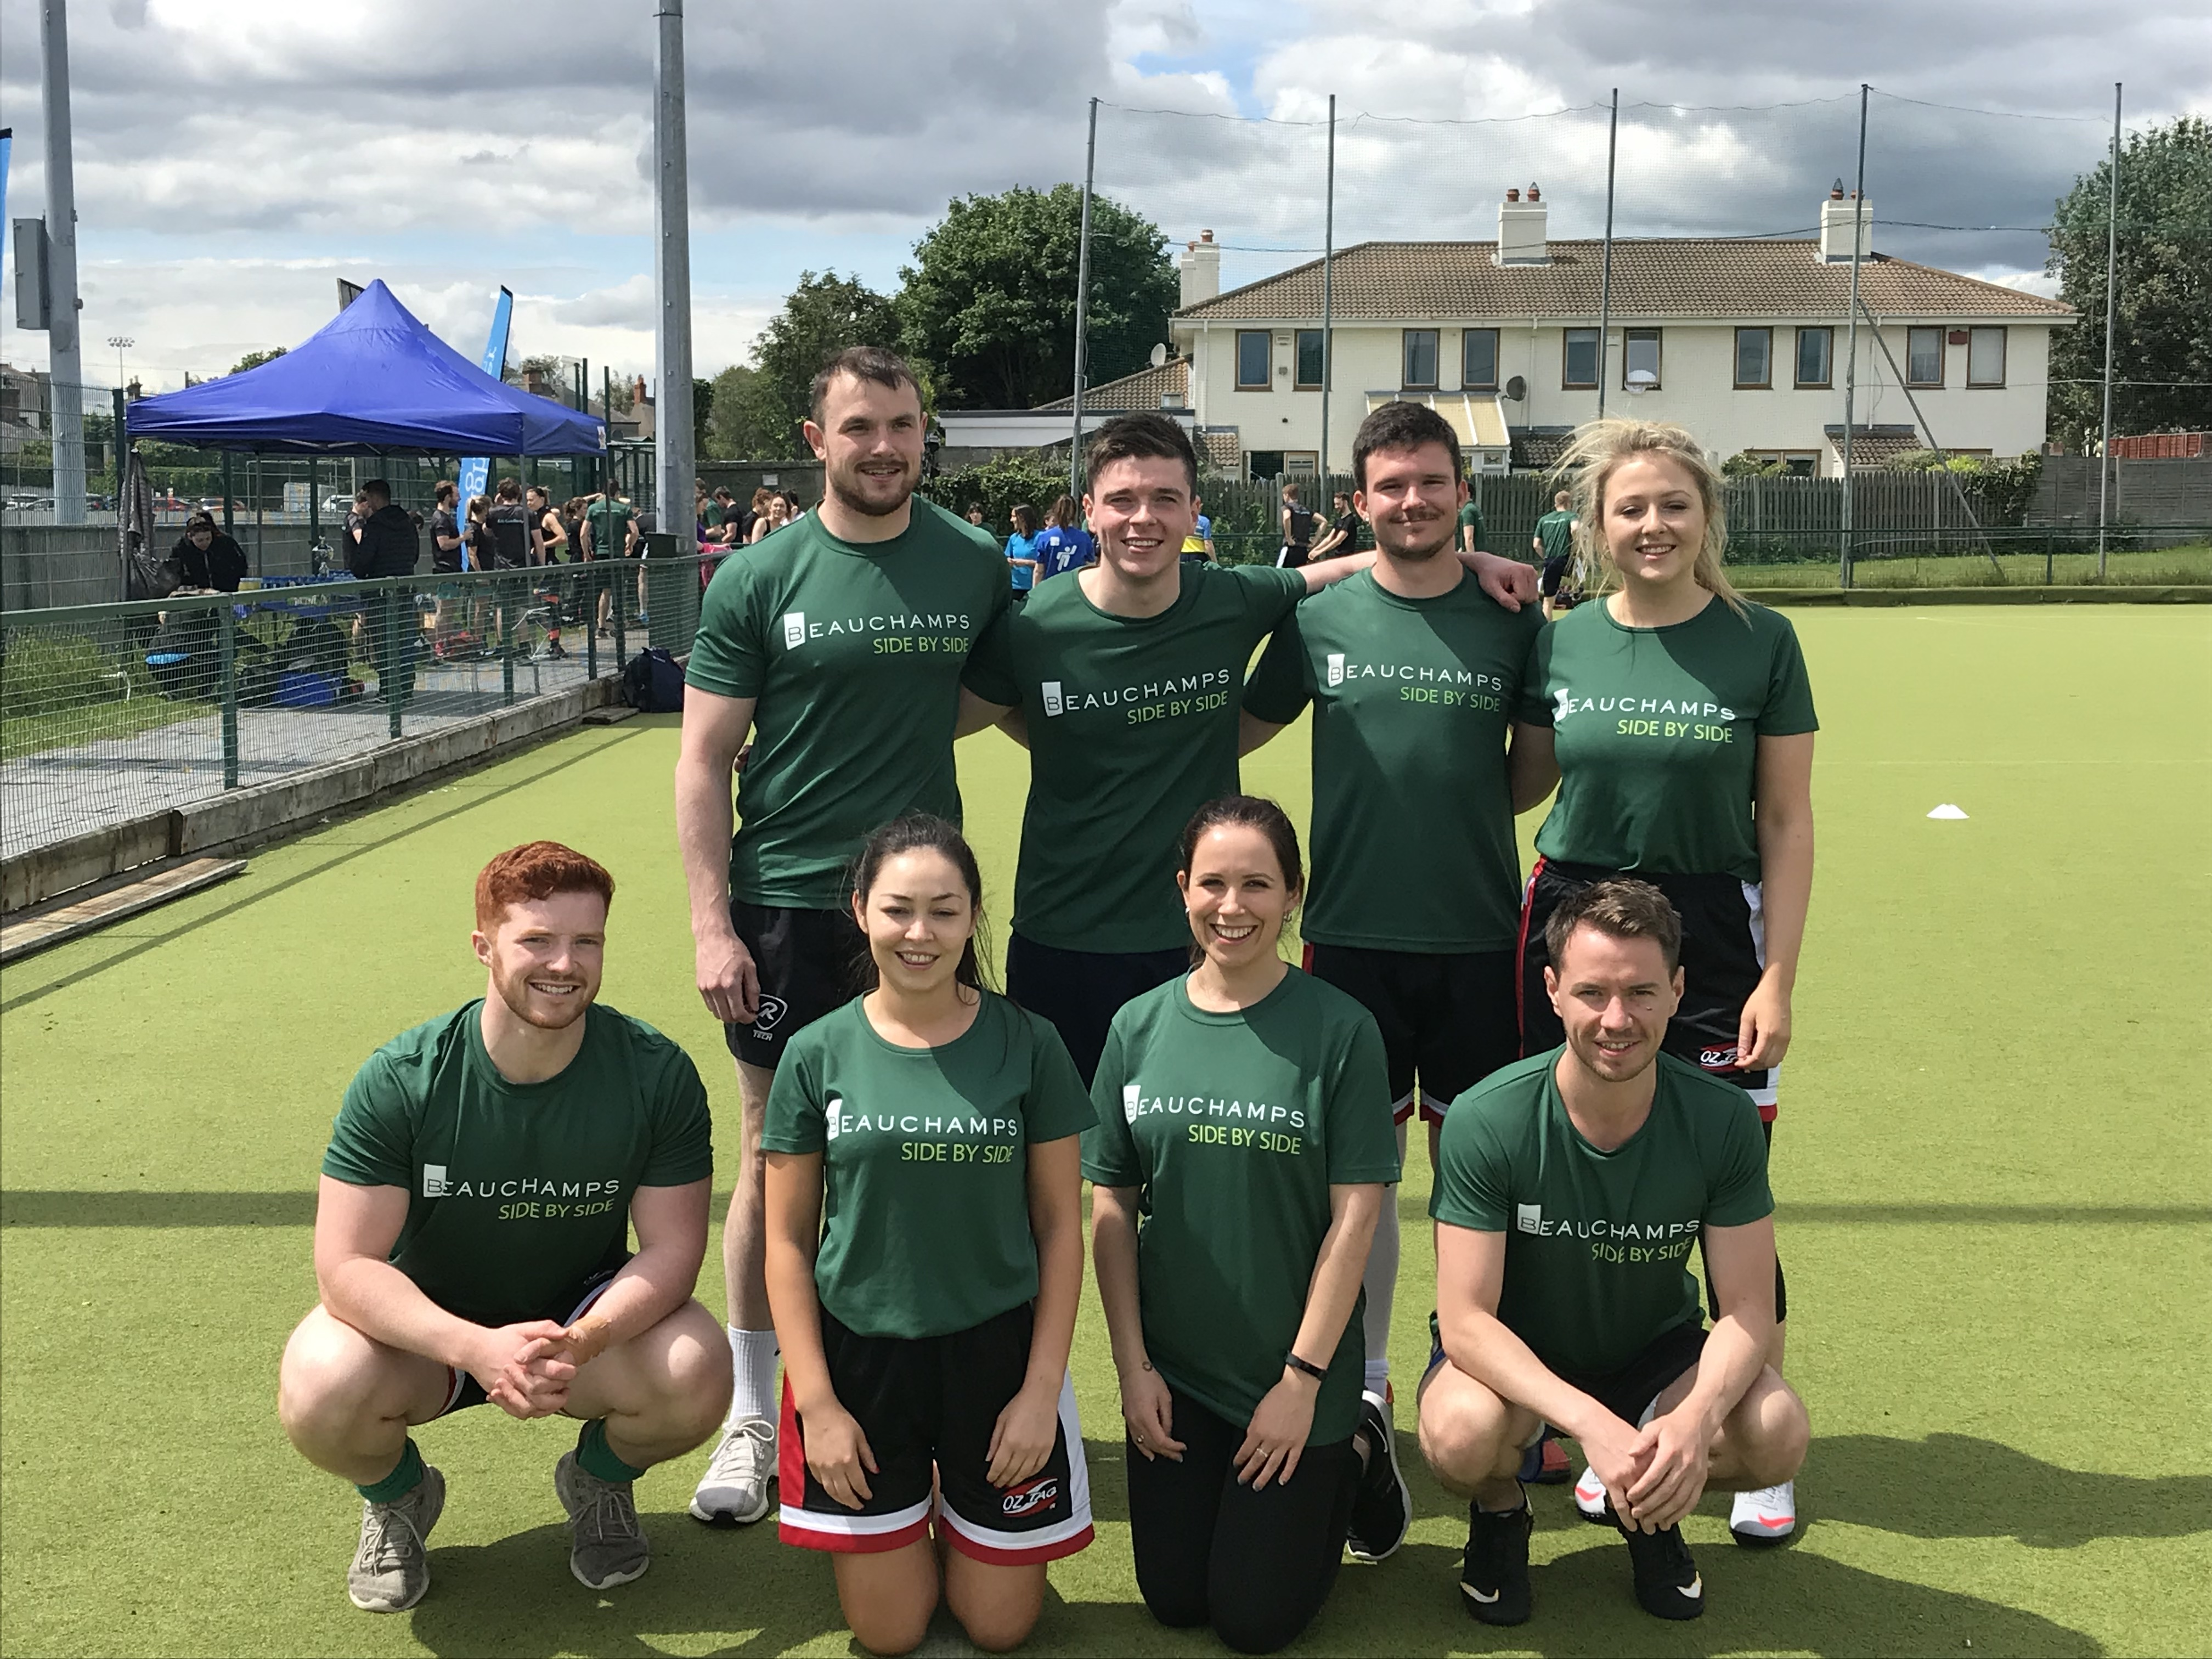 Beauchamps Law Team at SYS Tag Rugby Tournament 2019